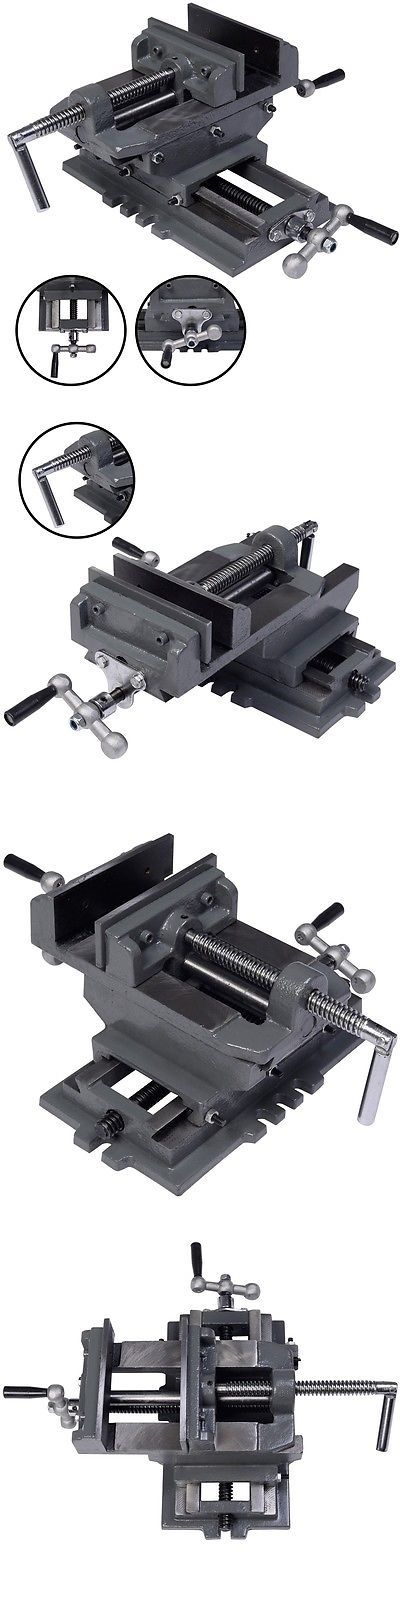 Clamps and Vises 20761: New 5 Cross Drill Press Vise X-Y Clamp Machine Slide Metal Milling 2 Way Hd -> BUY IT NOW ONLY: $45.99 on eBay!